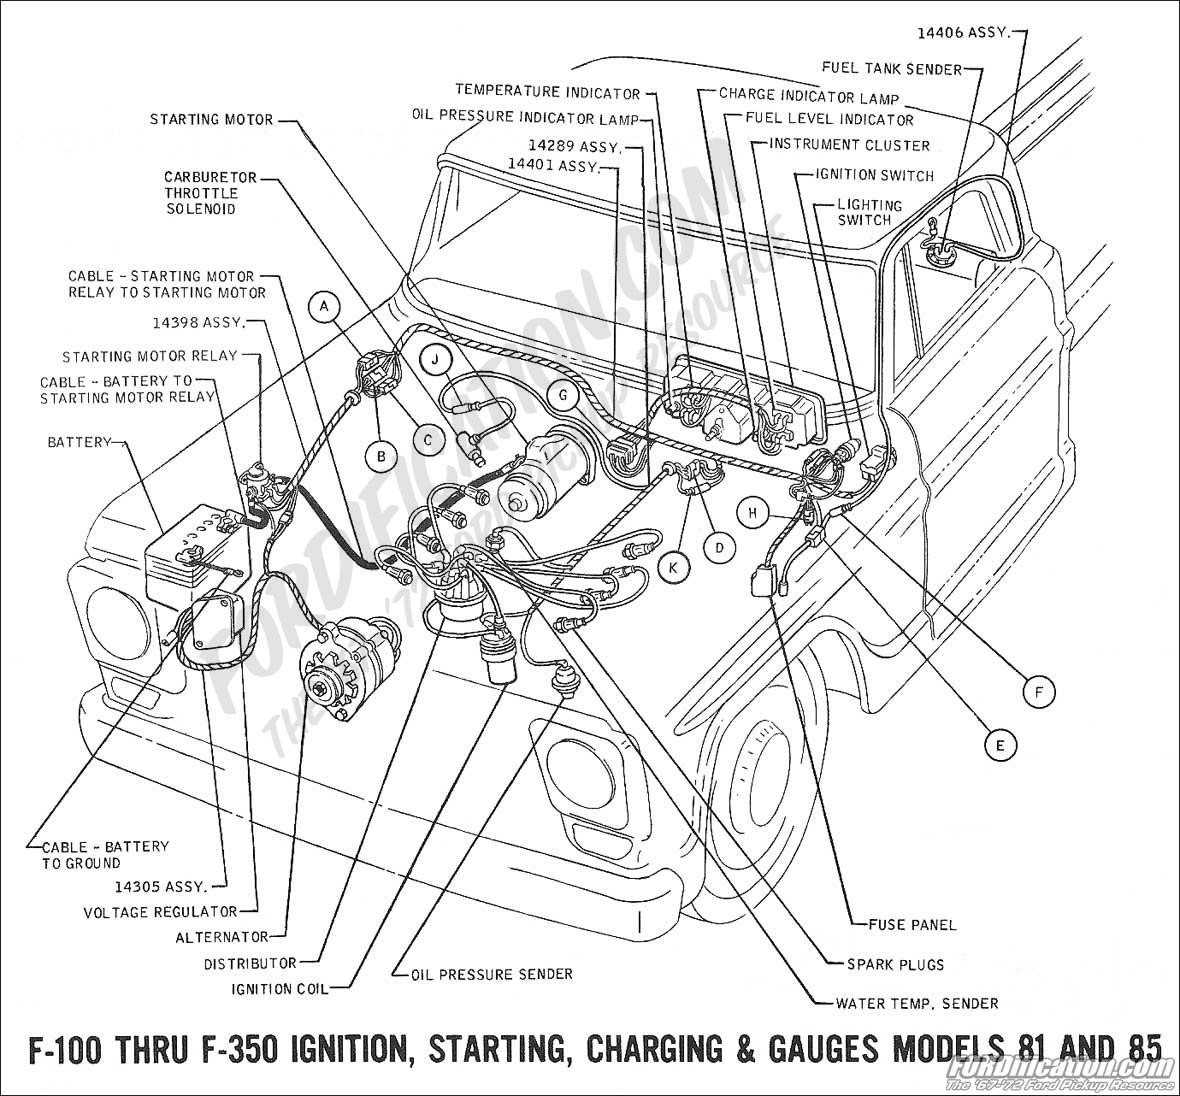 93 F150 Radio Wiring Diagram in addition Ford F550 Ke Light Wiring Diagram furthermore 2002 Ford Ranger Ke Wiring Diagram as well Radio Wiring Diagram 1998 Jeep Grand Cherokee additionally Mazda 626 Radio Wiring. on 1999 ford ranger ke diagram